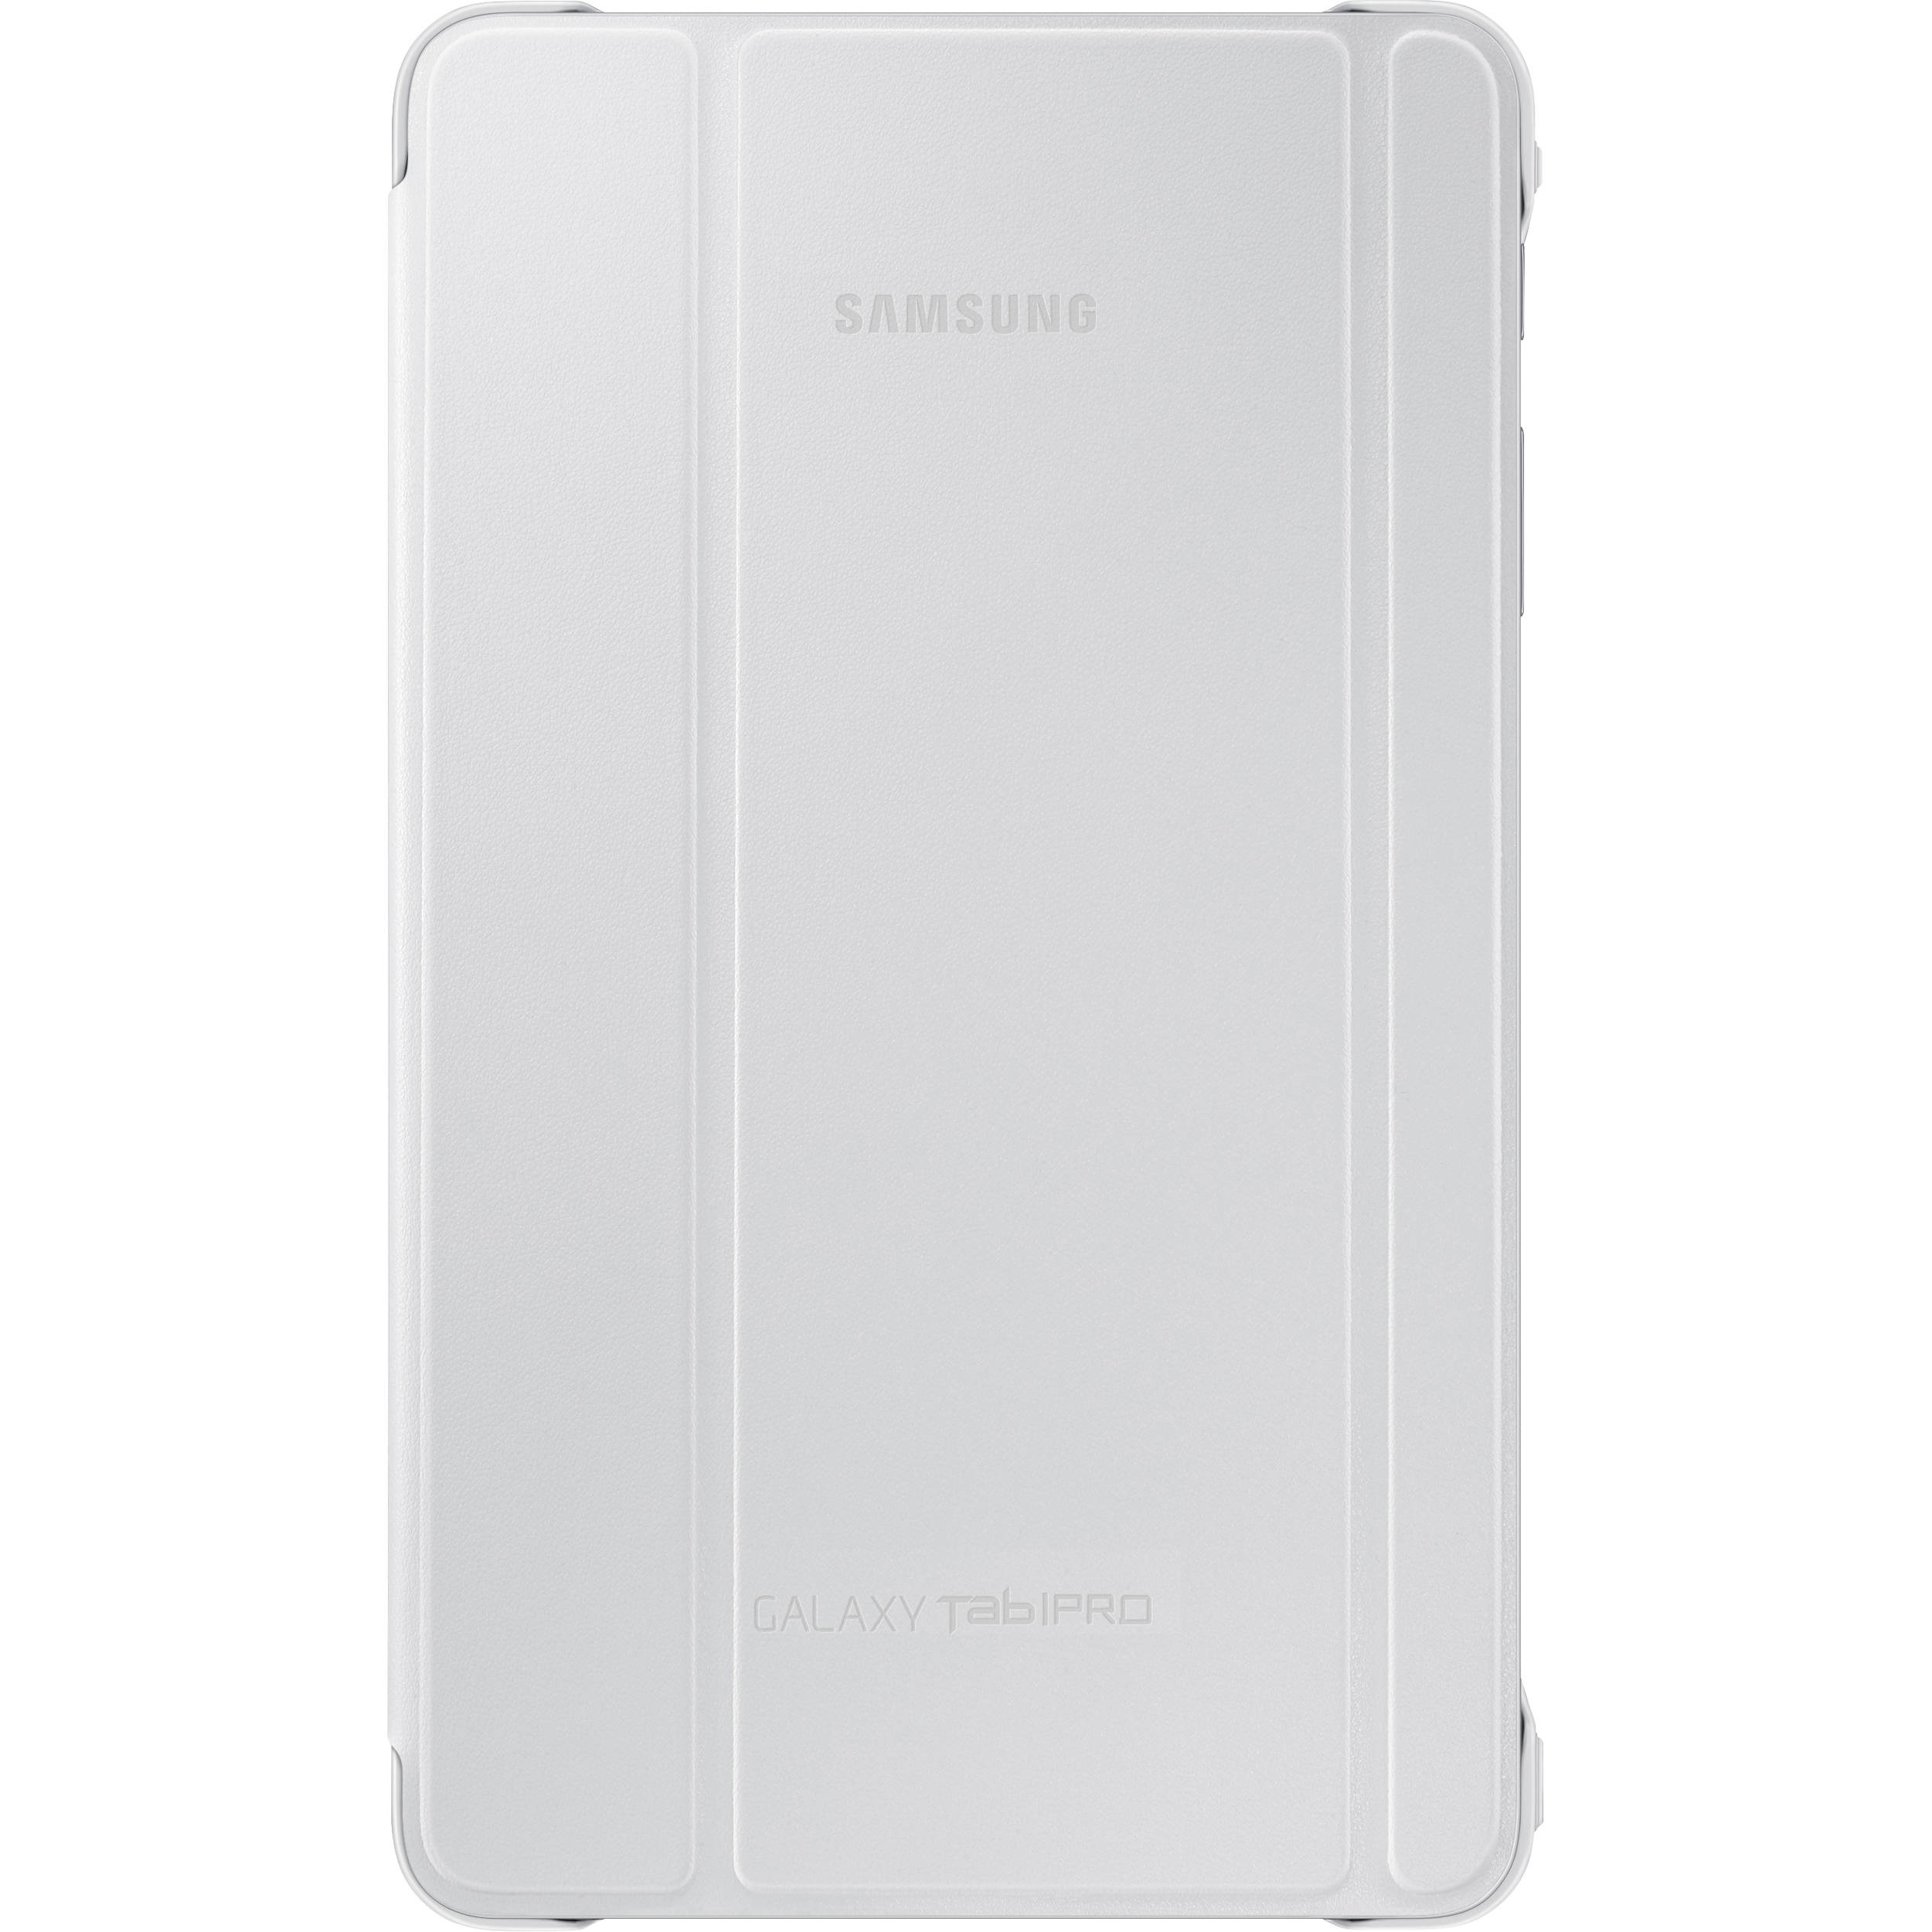 Samsung Book Cover White ~ Samsung book cover for galaxy tab pro white ef